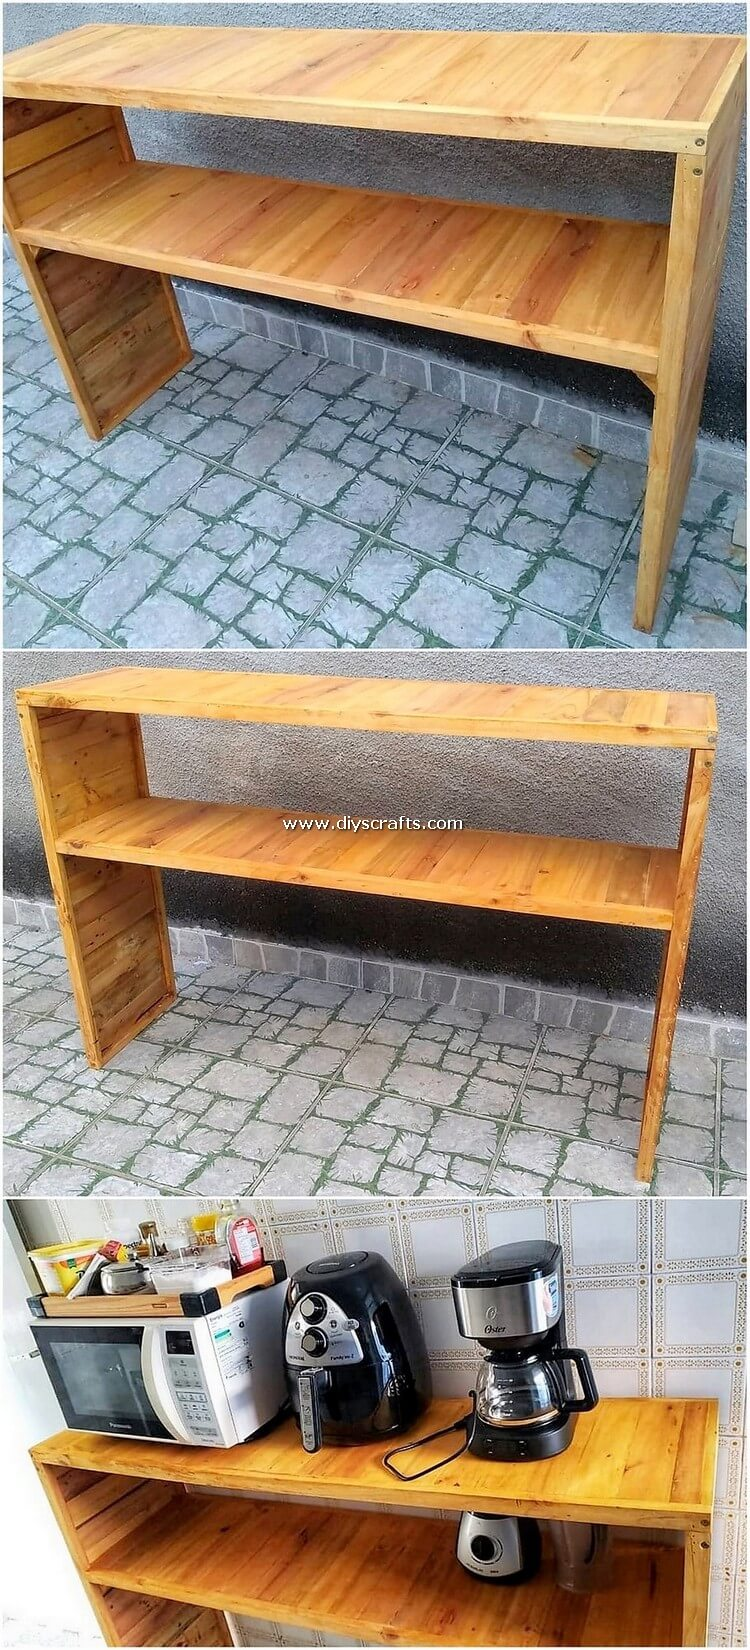 Pallet-Shelving-Table-2